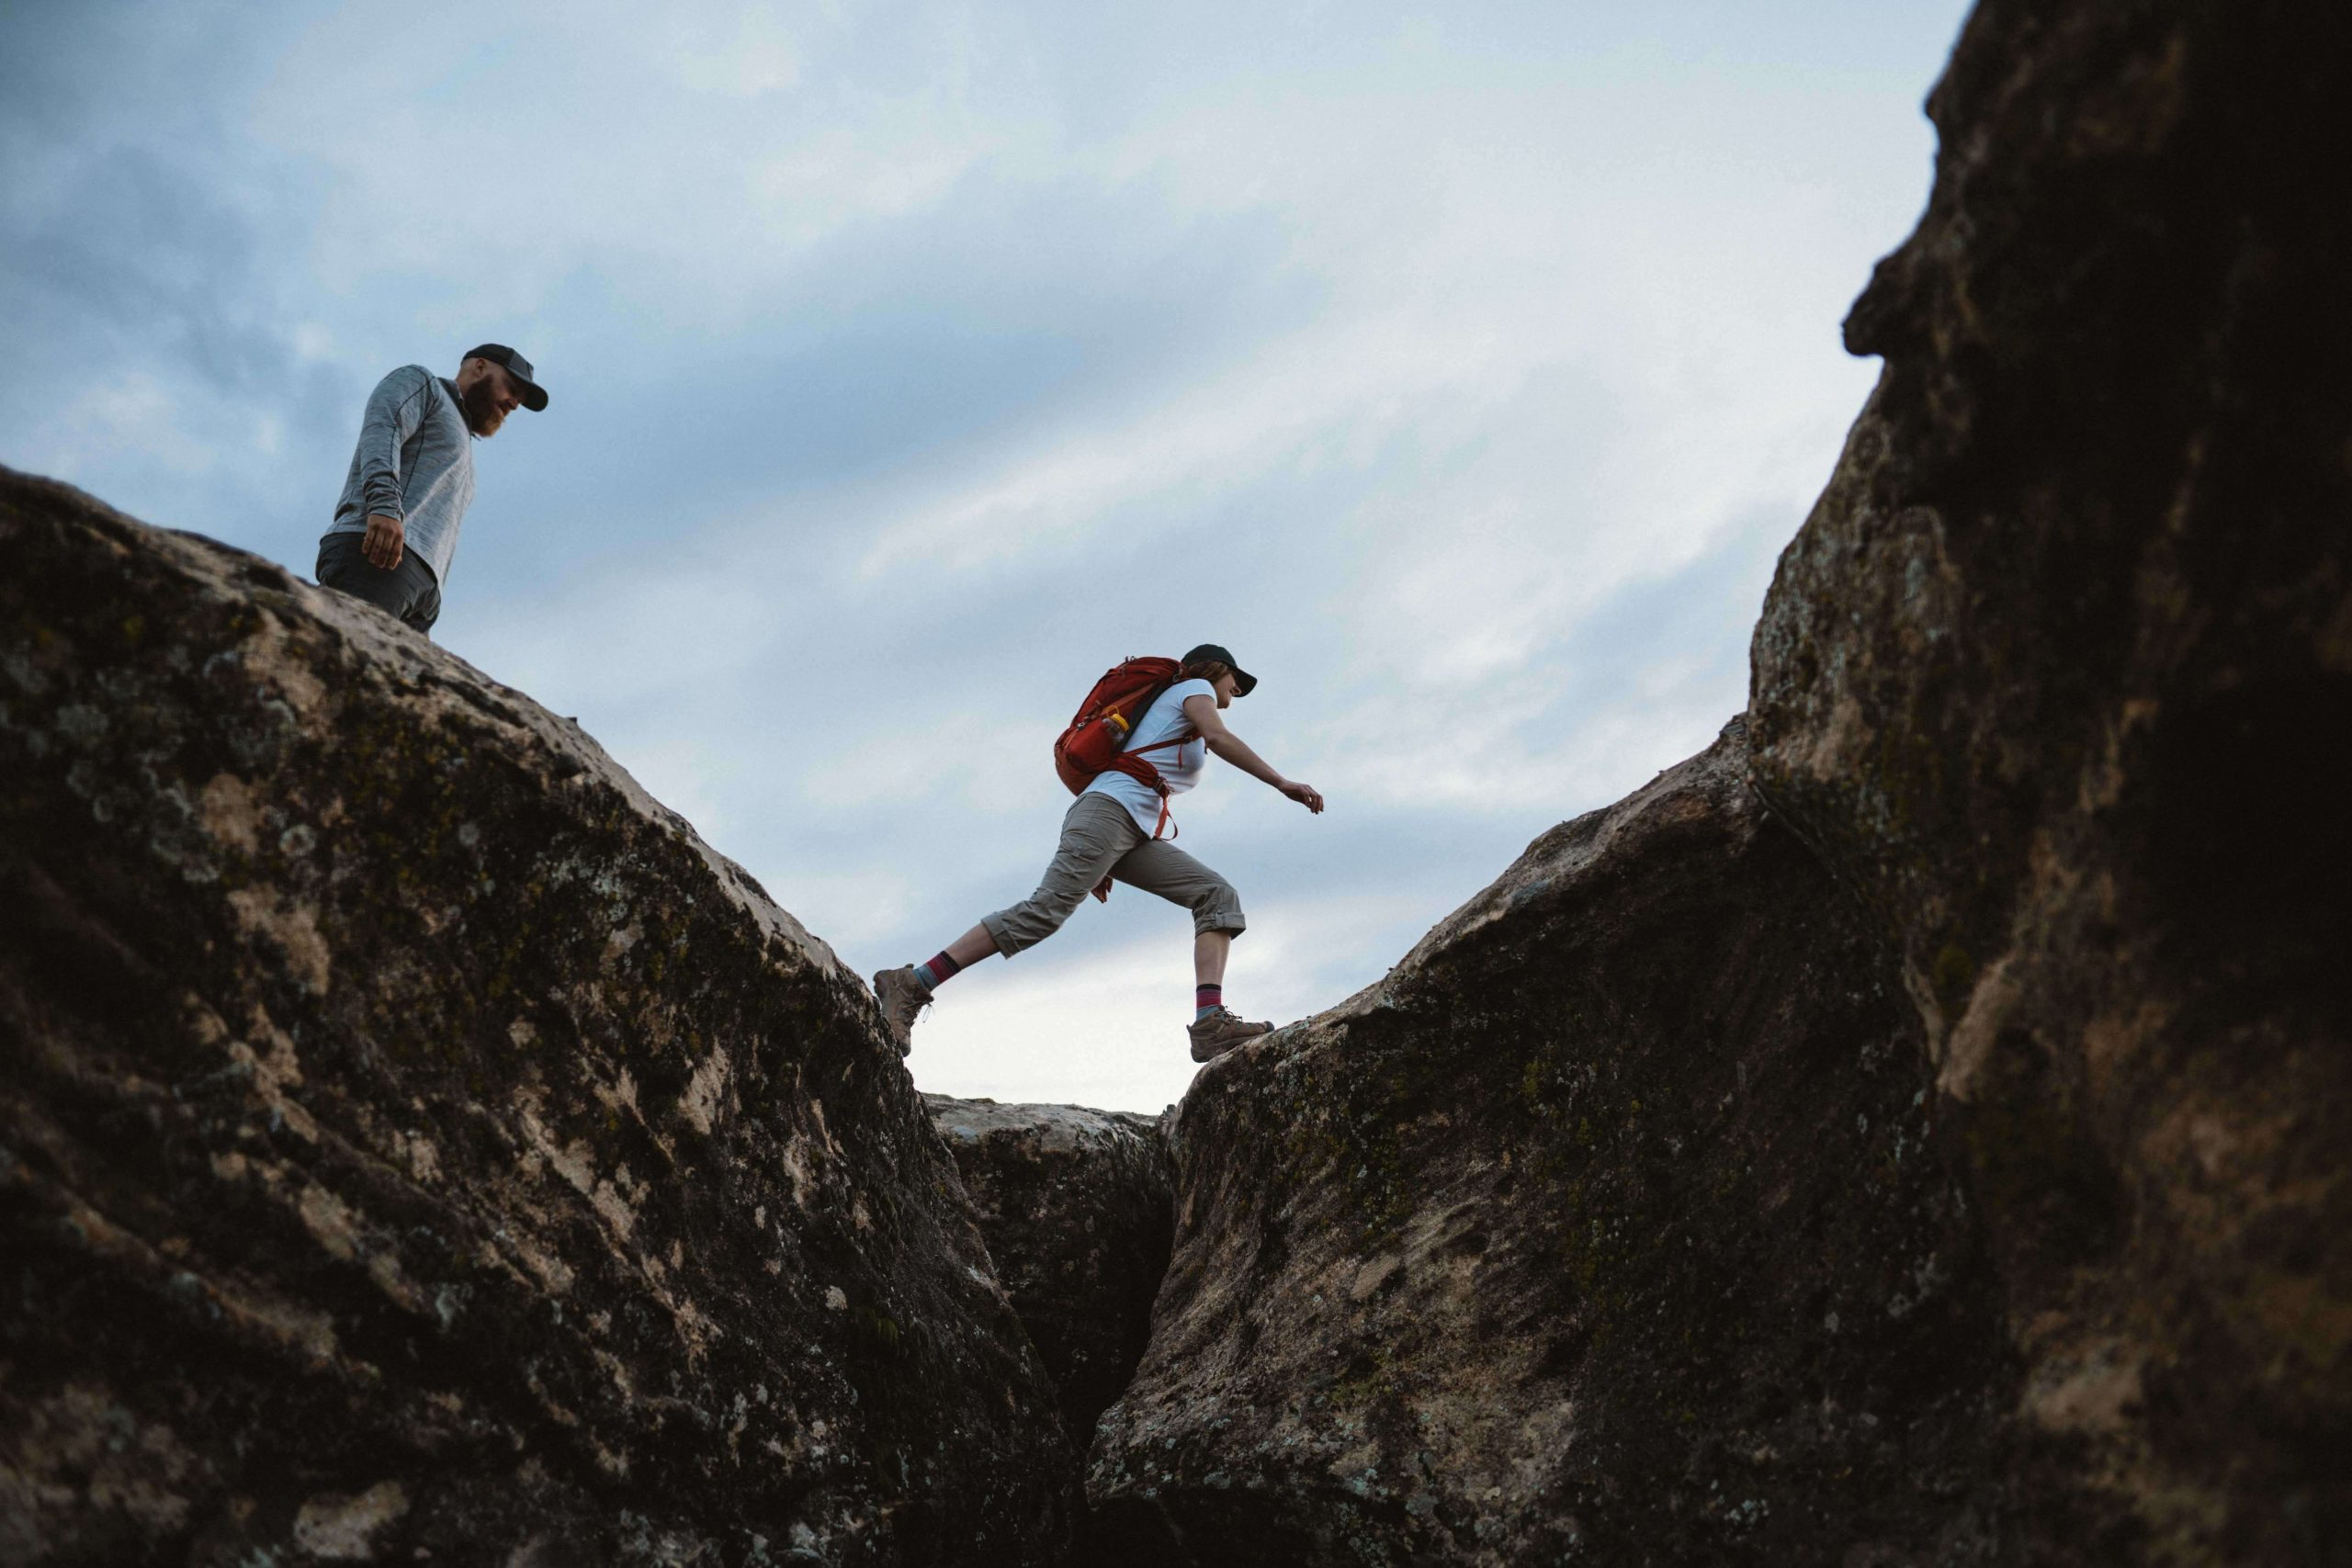 First Aid Kit Checklist Featured Image - Man and woman in KUHL clothing hiking